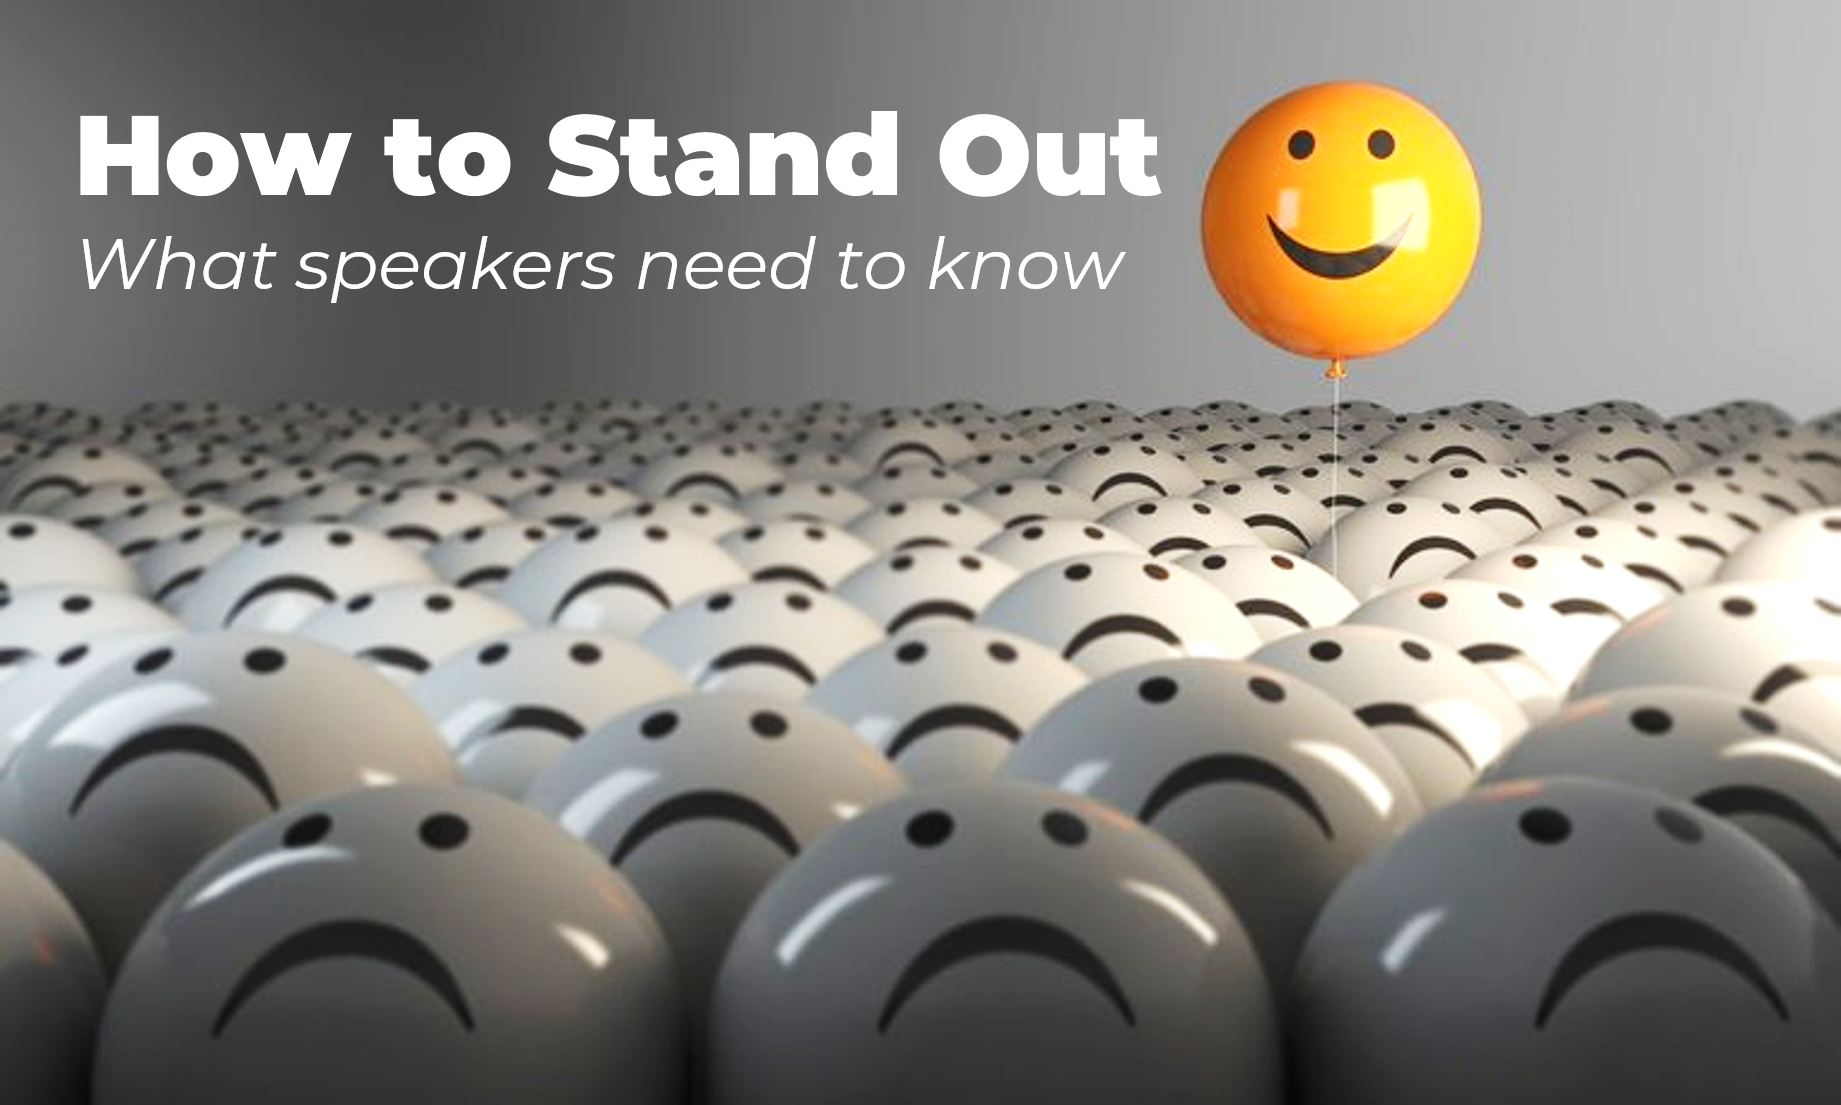 Keynote Speakers Standing Out - www.visualbreakthroughs.com